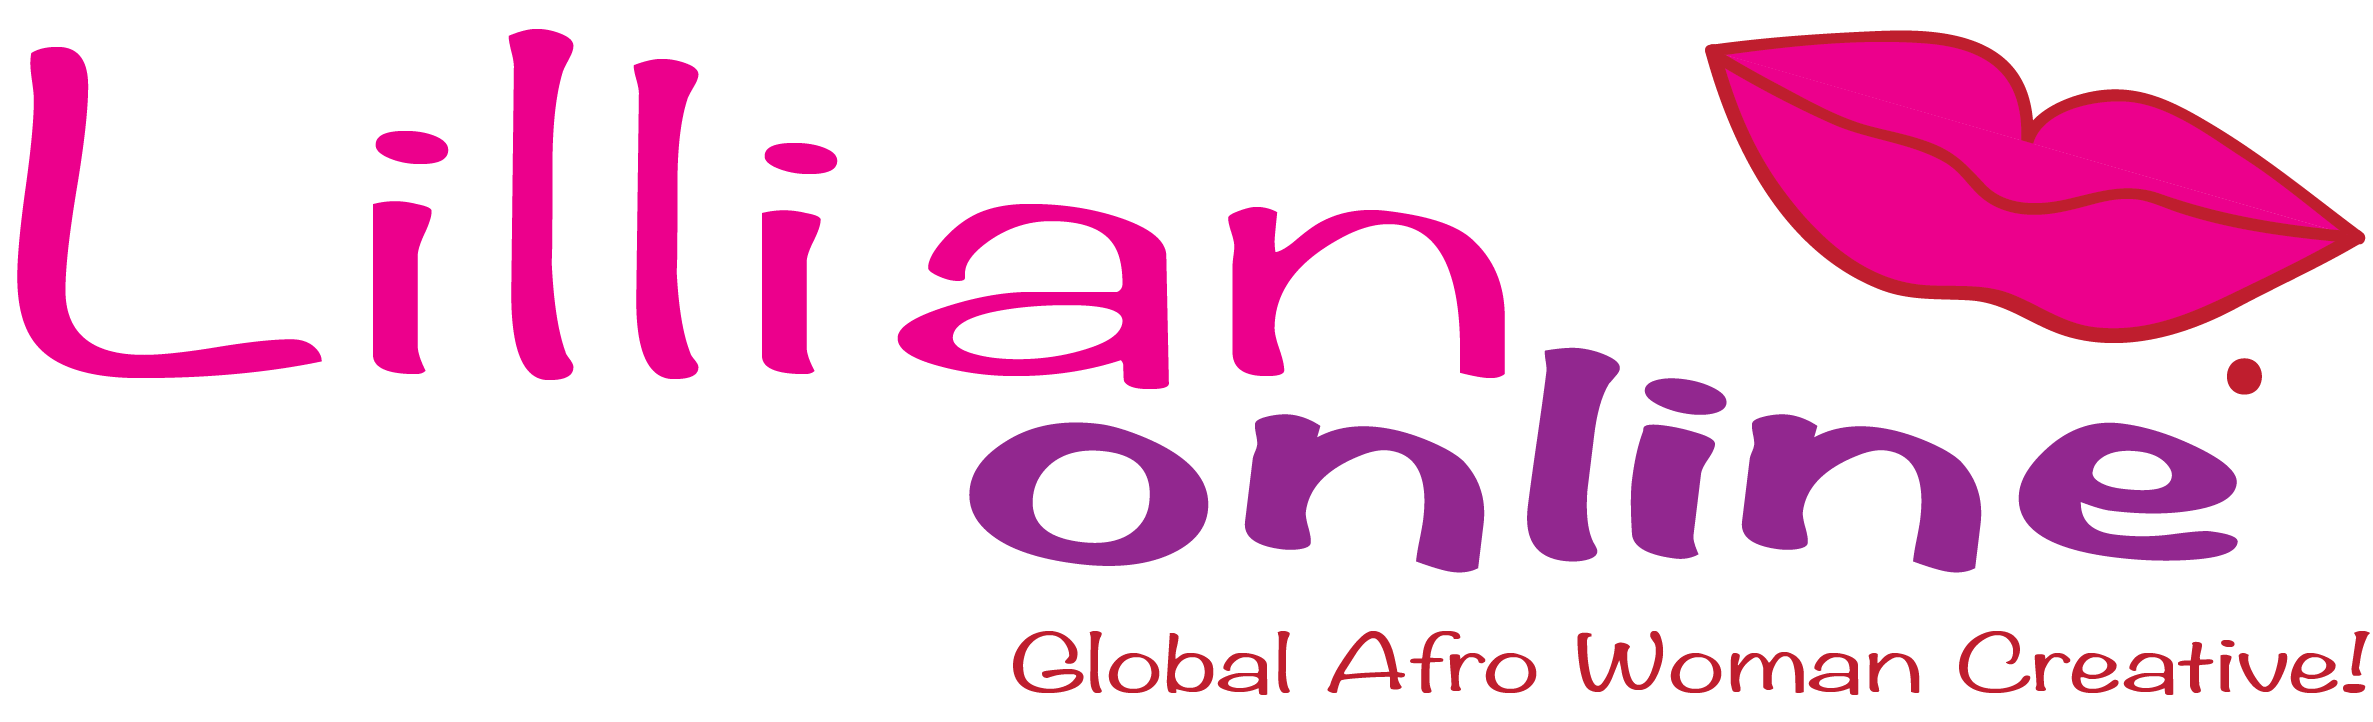 Global Afro Woman Creative Blog